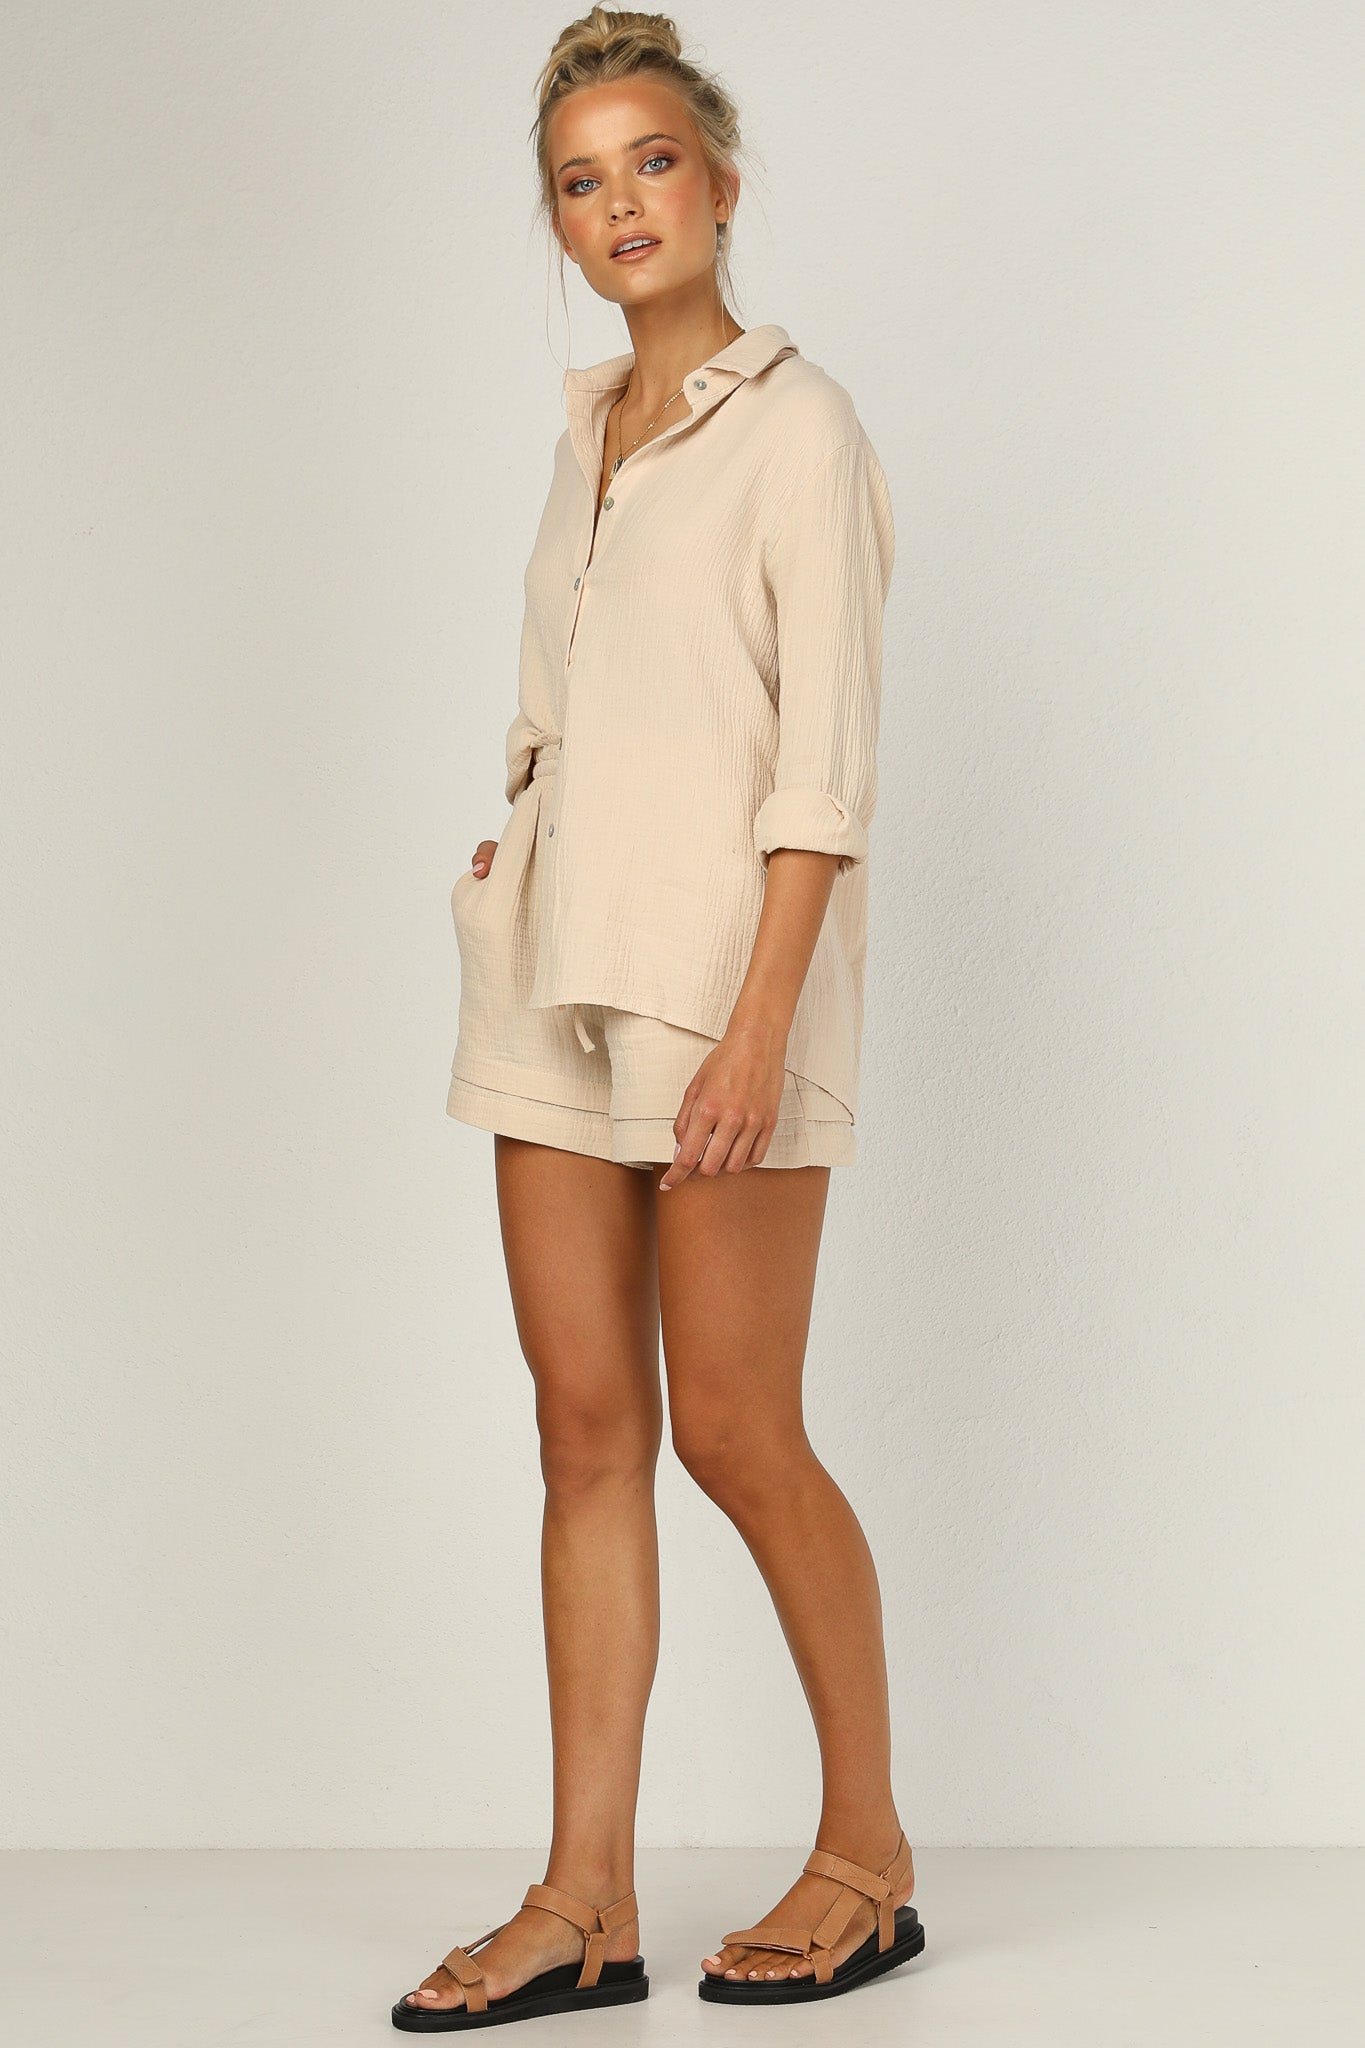 Cool Breeze Top (Beige)